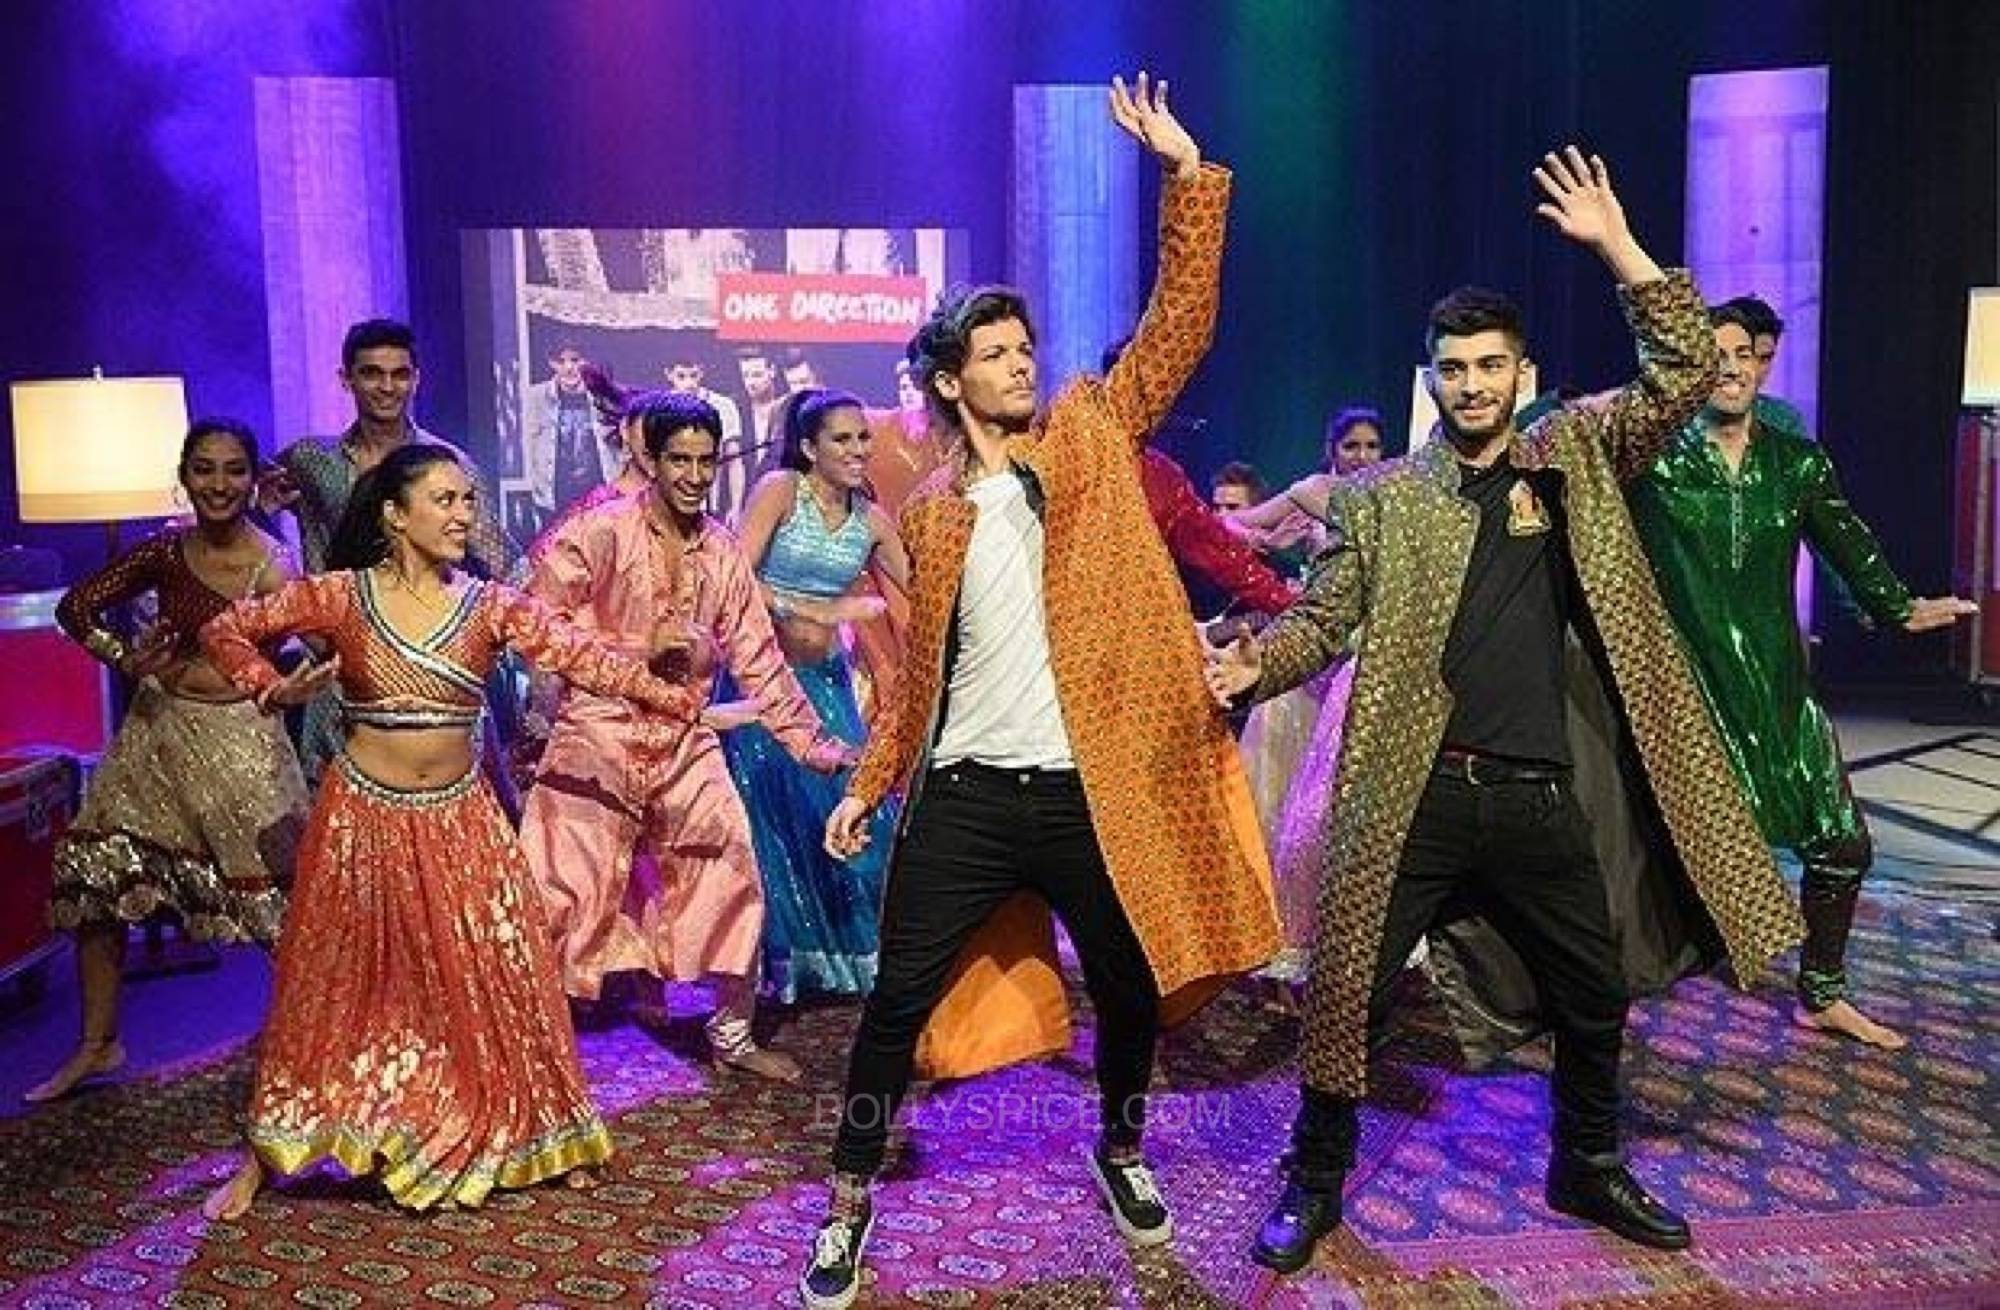 onedirectionndmbollywood4 One Direction Goes Bollywood for 1D Day Special